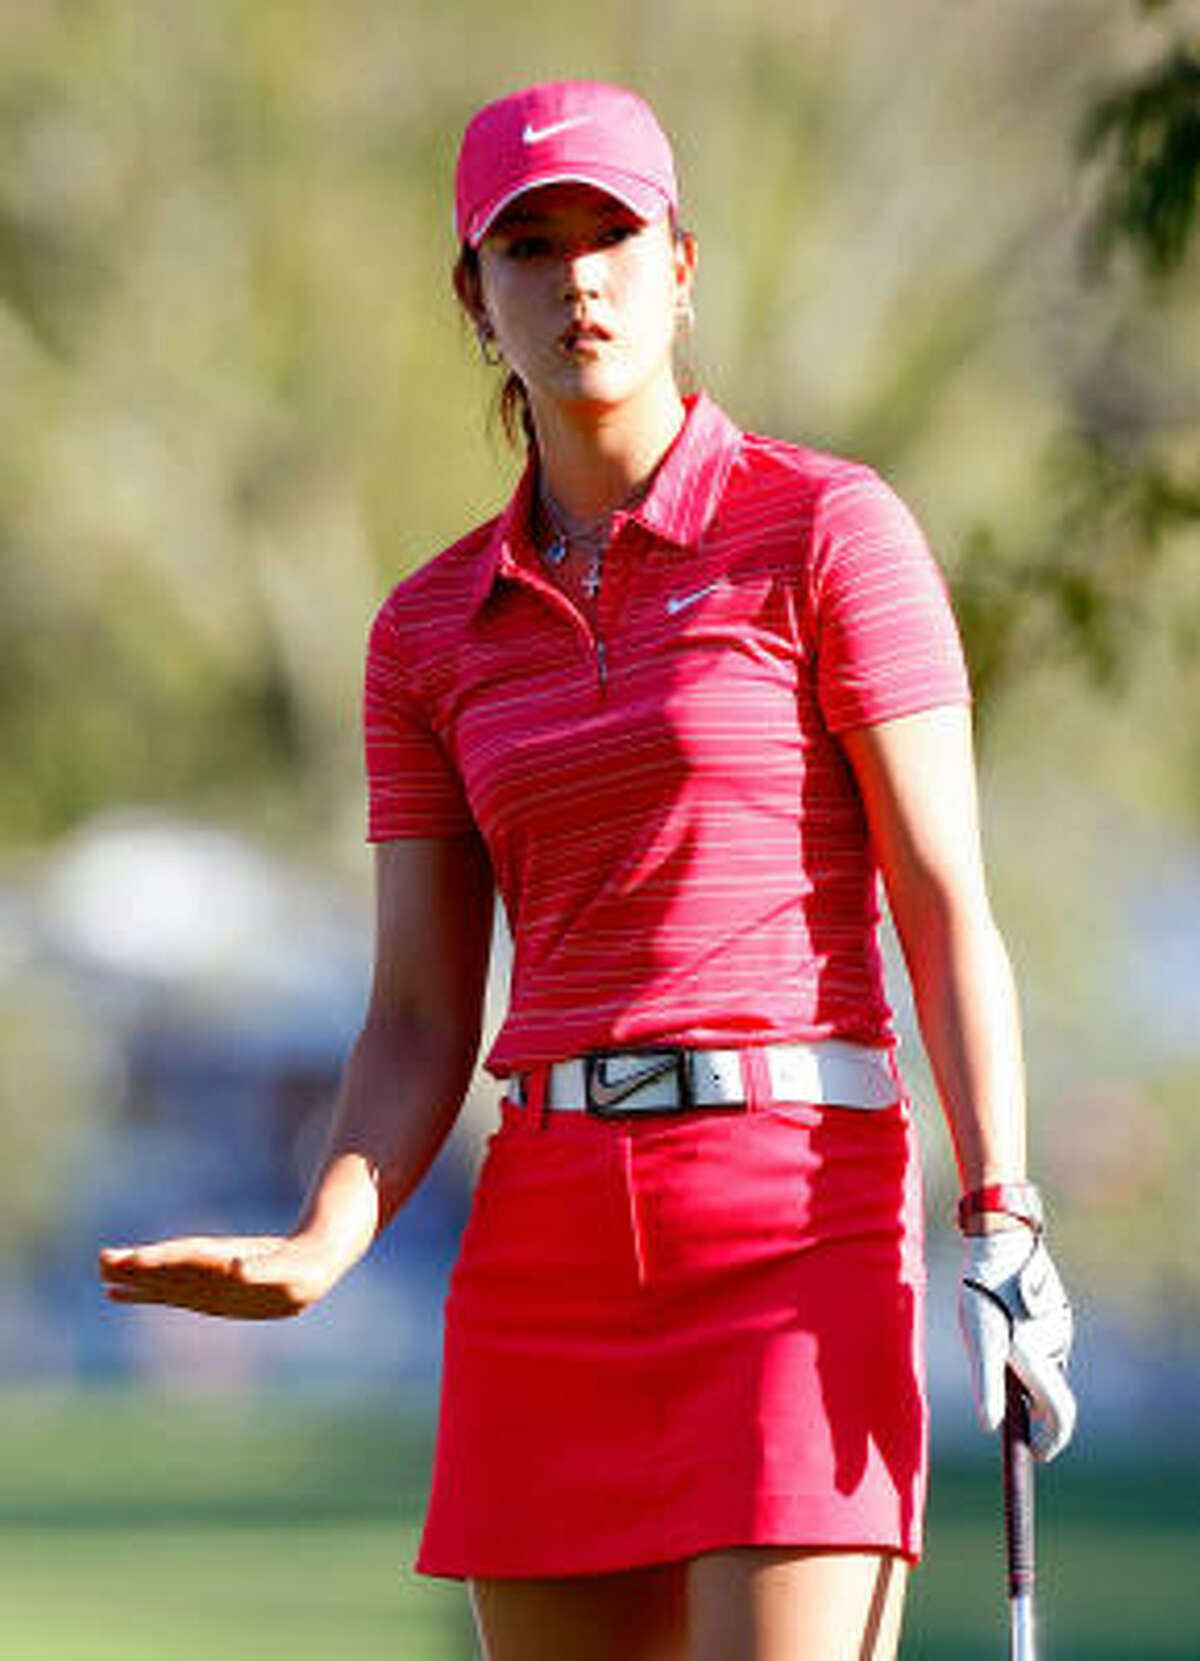 If you watched Michelle Wie win her first major at the Lorena Ochoa Invitational in Mexico on Sunday, you saw her in head-to-toe Nike pink. Sure, her wardrobe is fairly scripted by her sponsor, but the 20-year-old Wie does have some say in what she wears when she works.